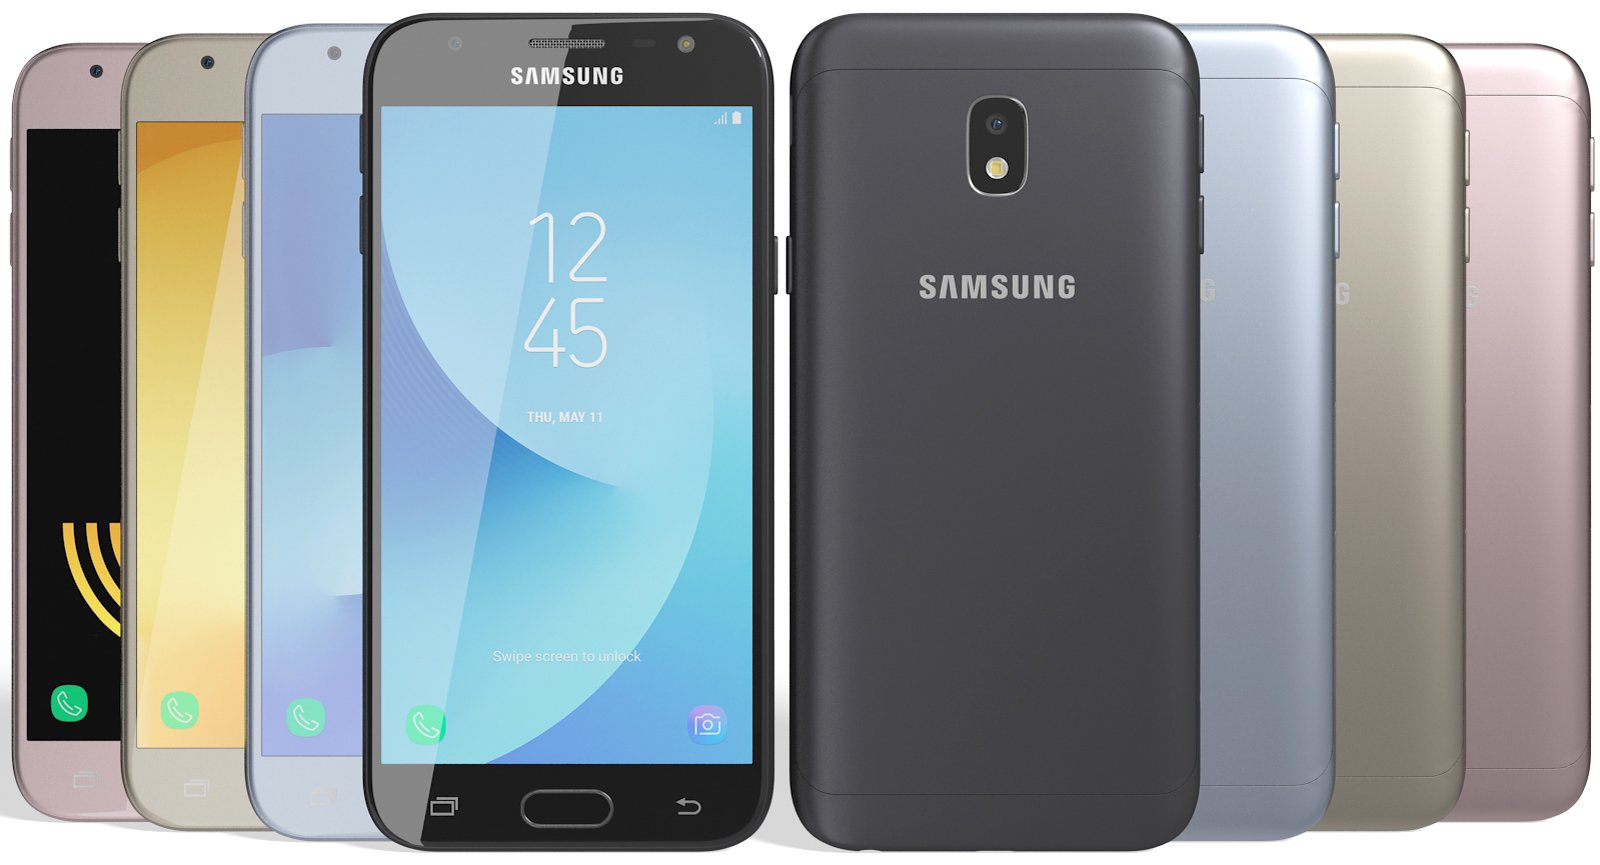 The Samsung Galaxy J3 line-up includes the Pro, Prime, Emerge, Top and Orbit.